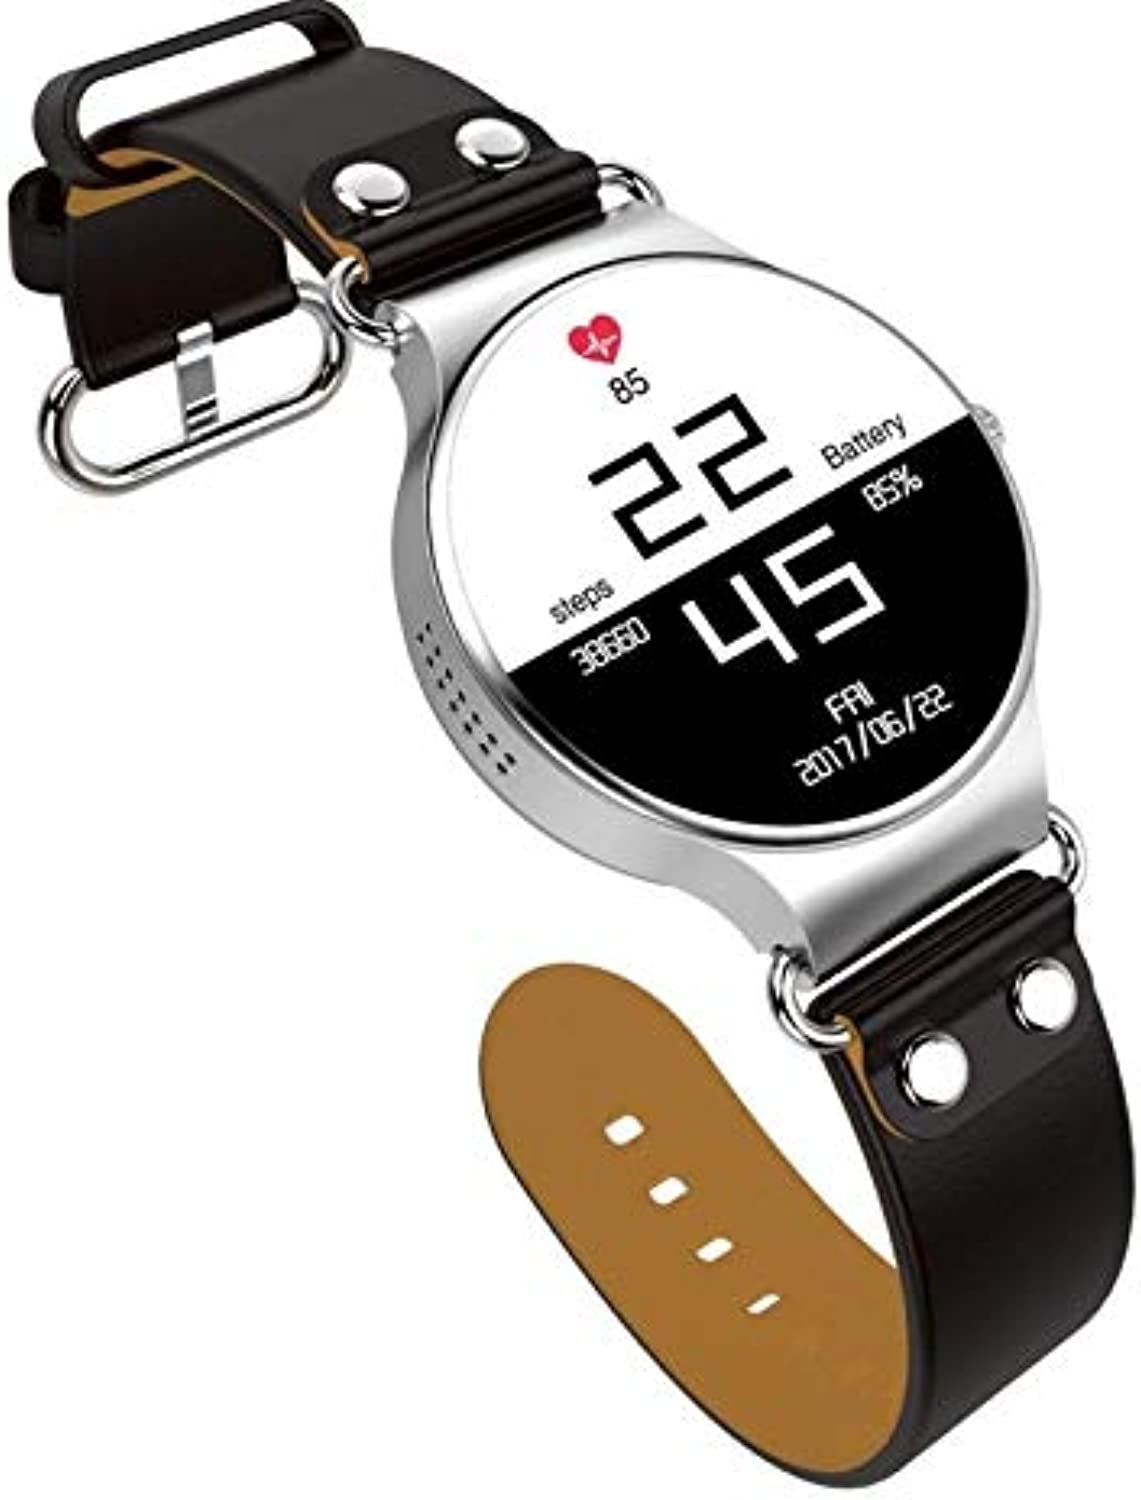 GaoMiTA Smart Watch Android Round Screen Card GPS Positioning Watch WiFi Weather Watch